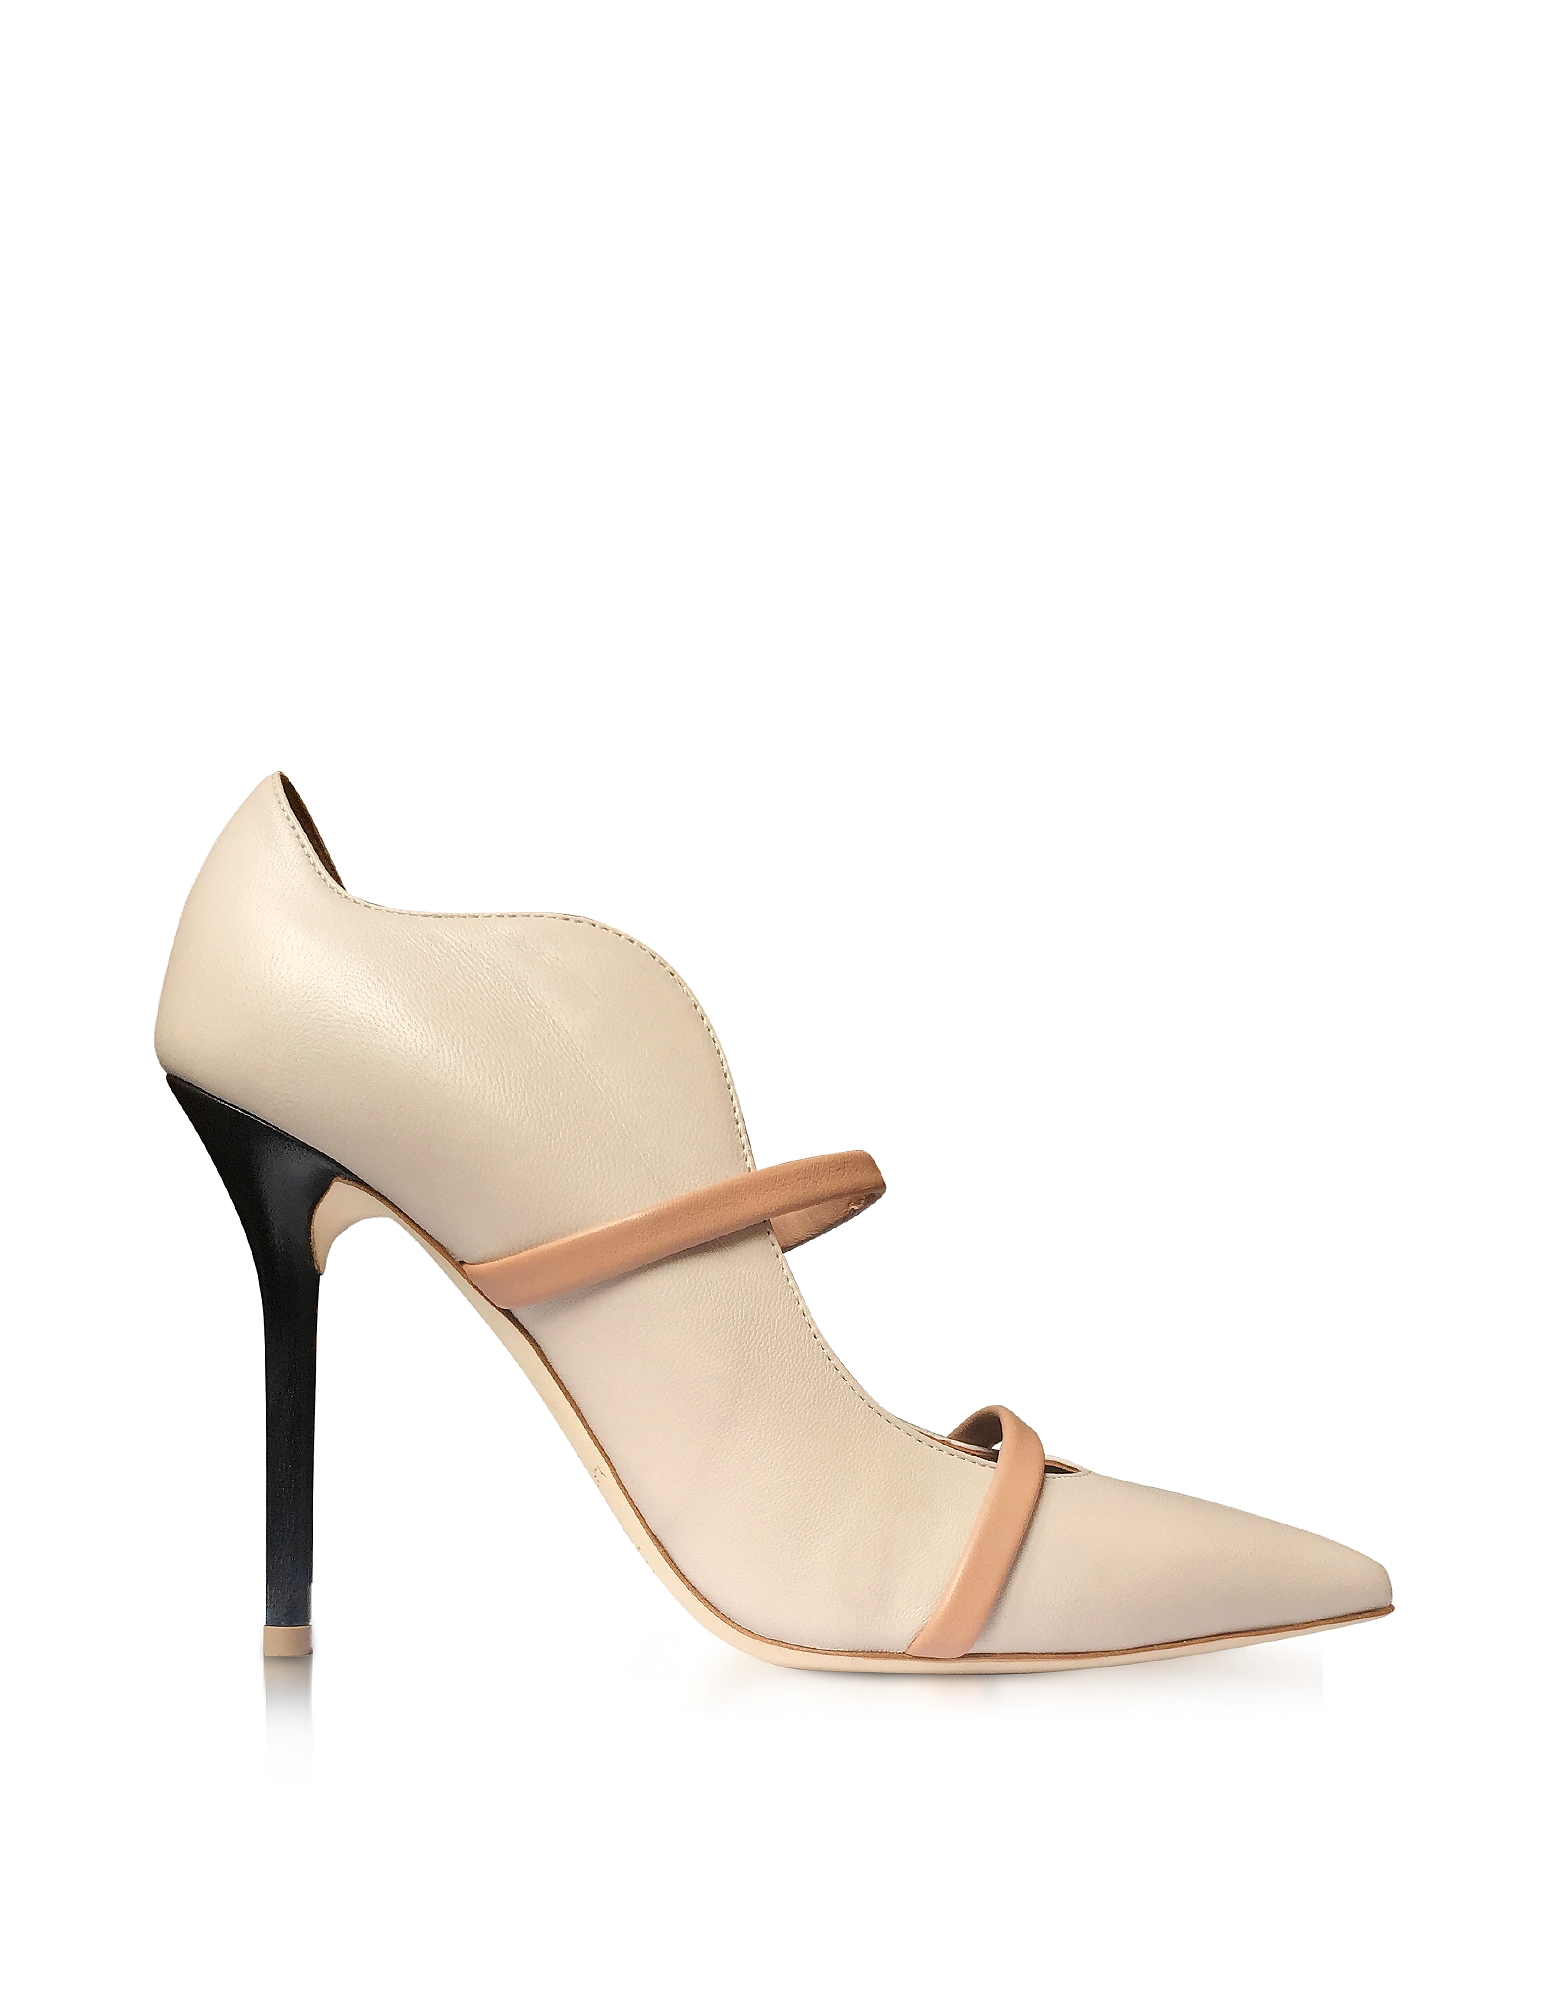 Malone Souliers Shoes, Maureen Ice, Nude and Black Nappa Leather High Heel Pump